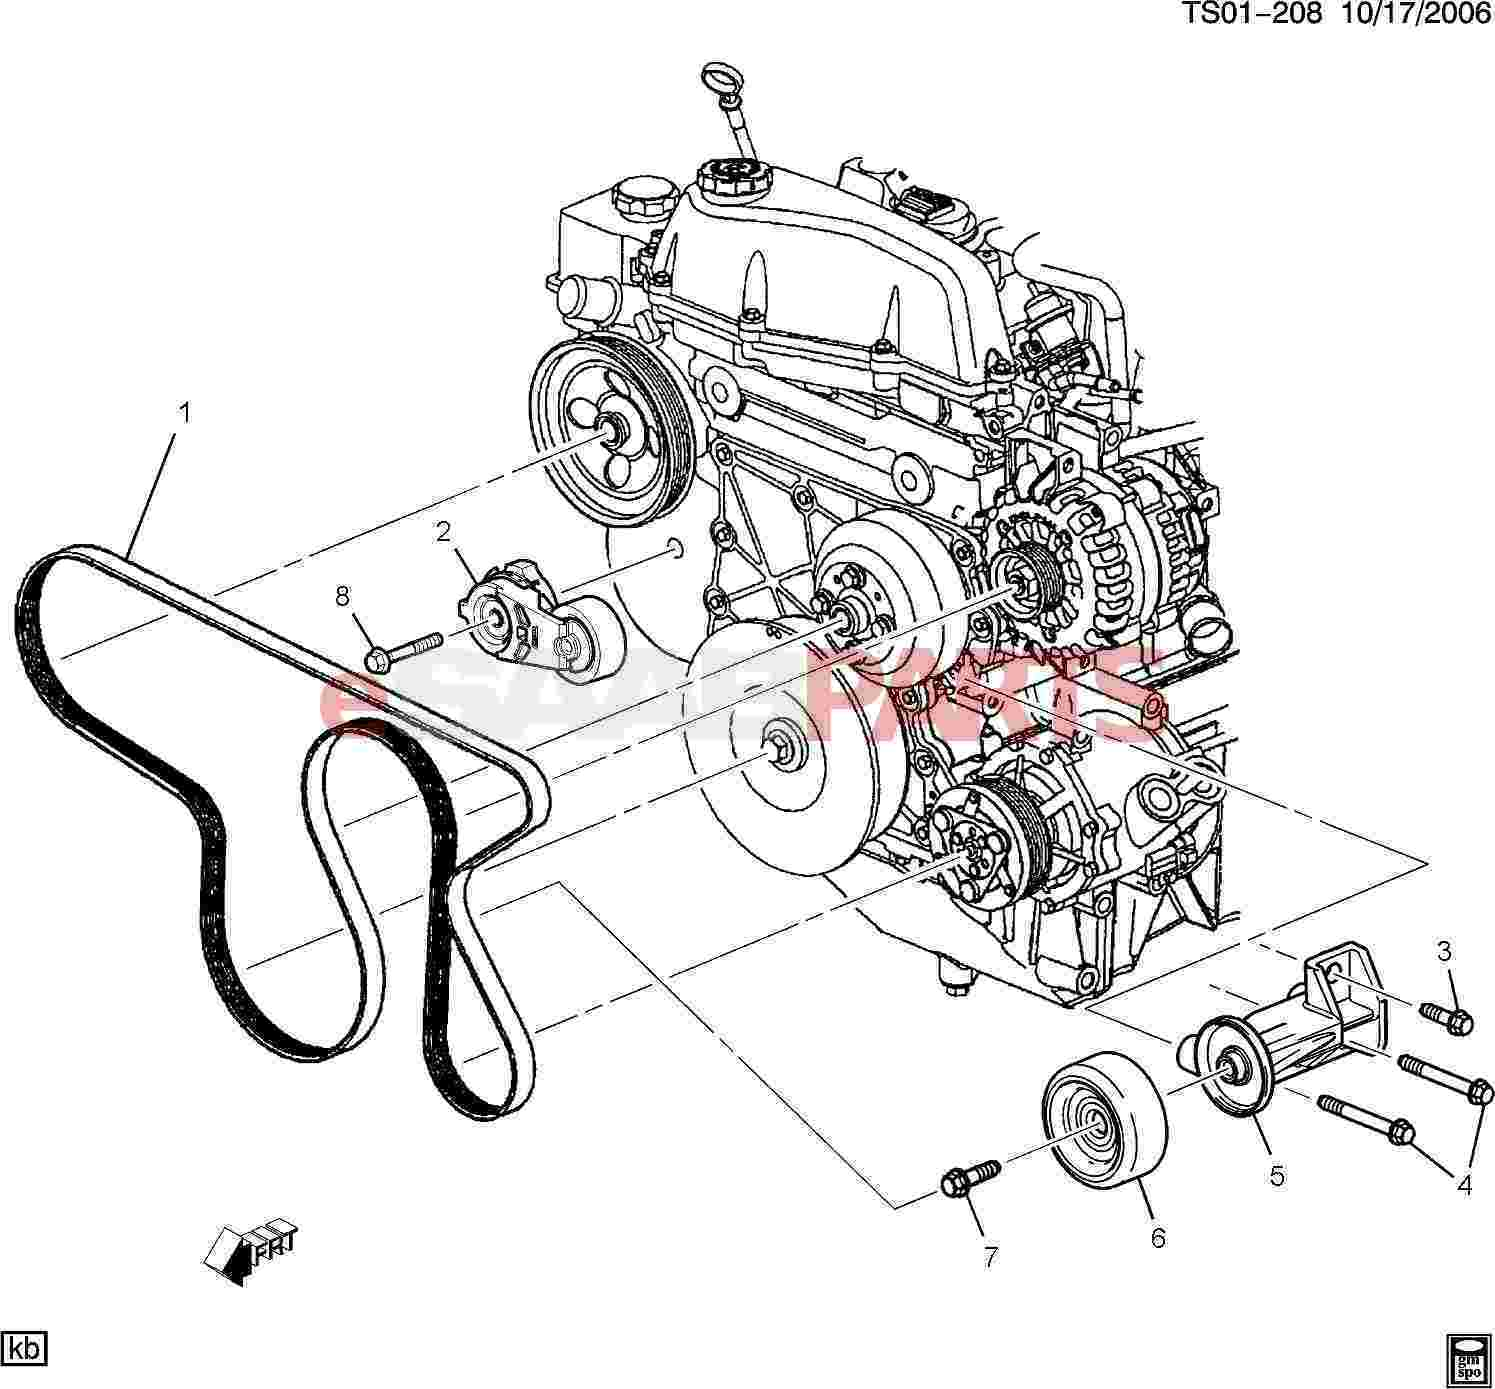 2004 Chevy Trailblazer Engine Diagram Wiring Diagrams Establish Establish Massimocariello It